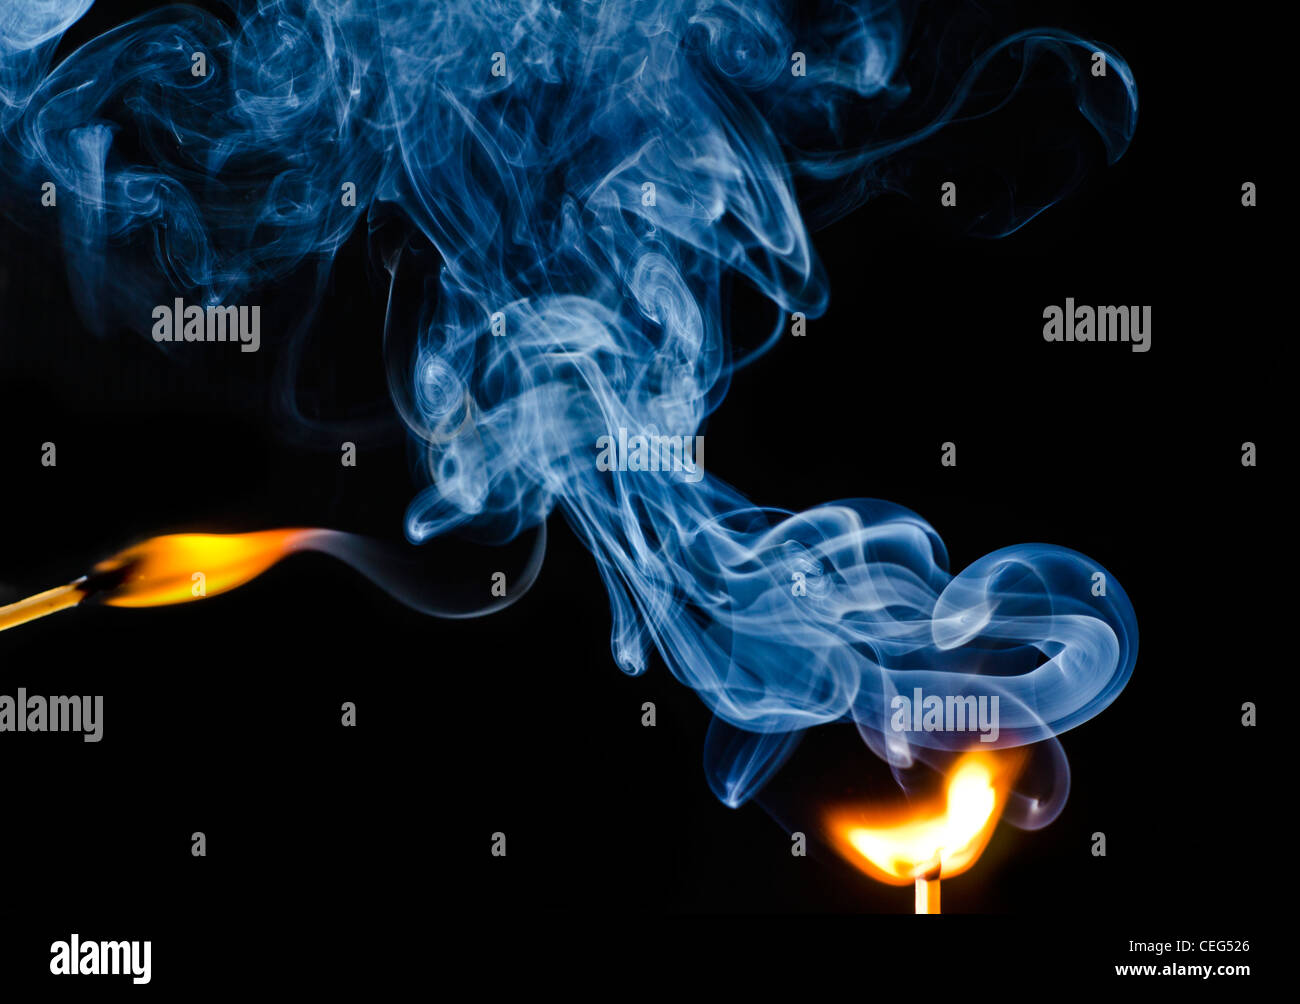 Striking of a match showing smoke rising against a black background. Stock Photo